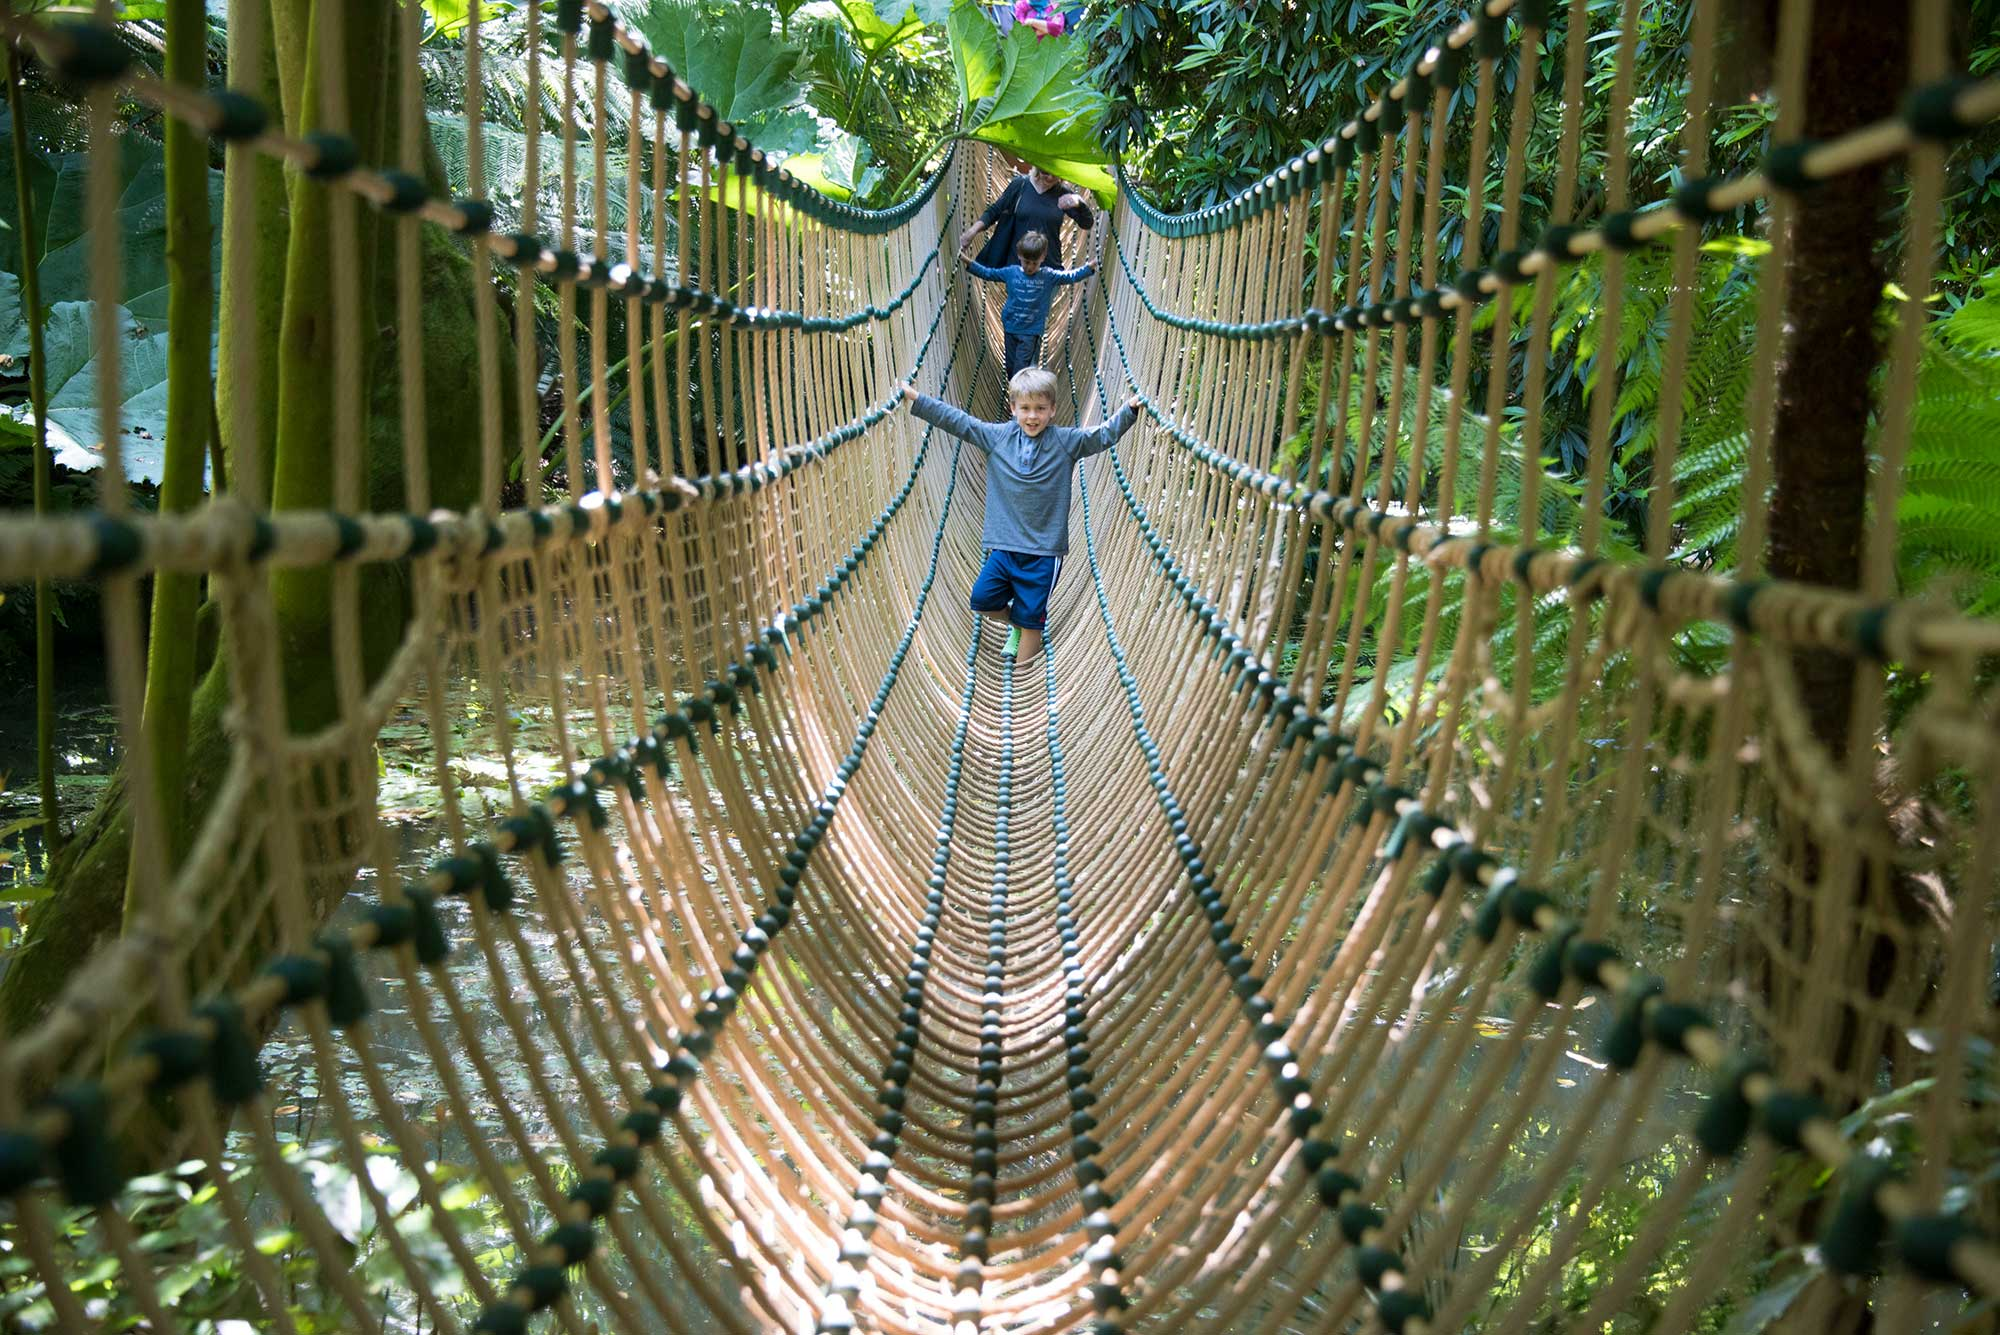 The Burma Rope Bridge at Abbotsbury Subtropical Gardens